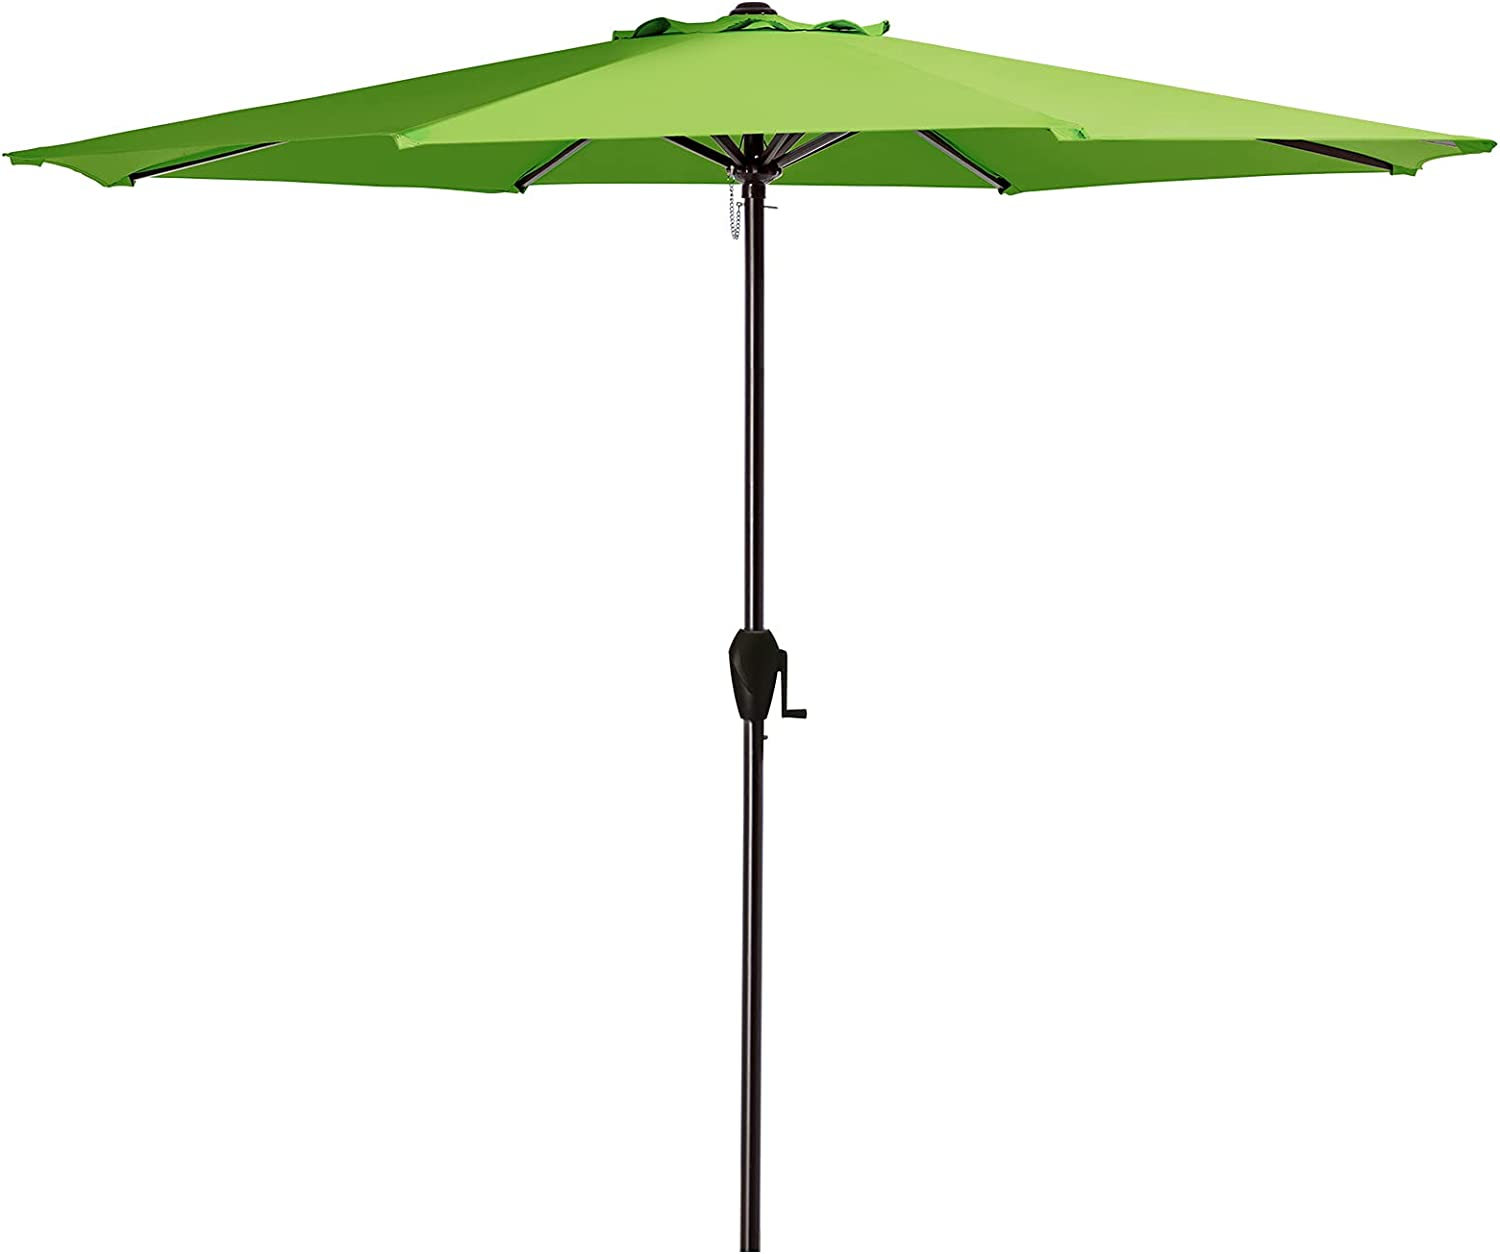 JEAREY 11FT Patio Umbrellas Outdoor Table Columbus Mall Max 81% OFF 8 with Sturdy Umbrella